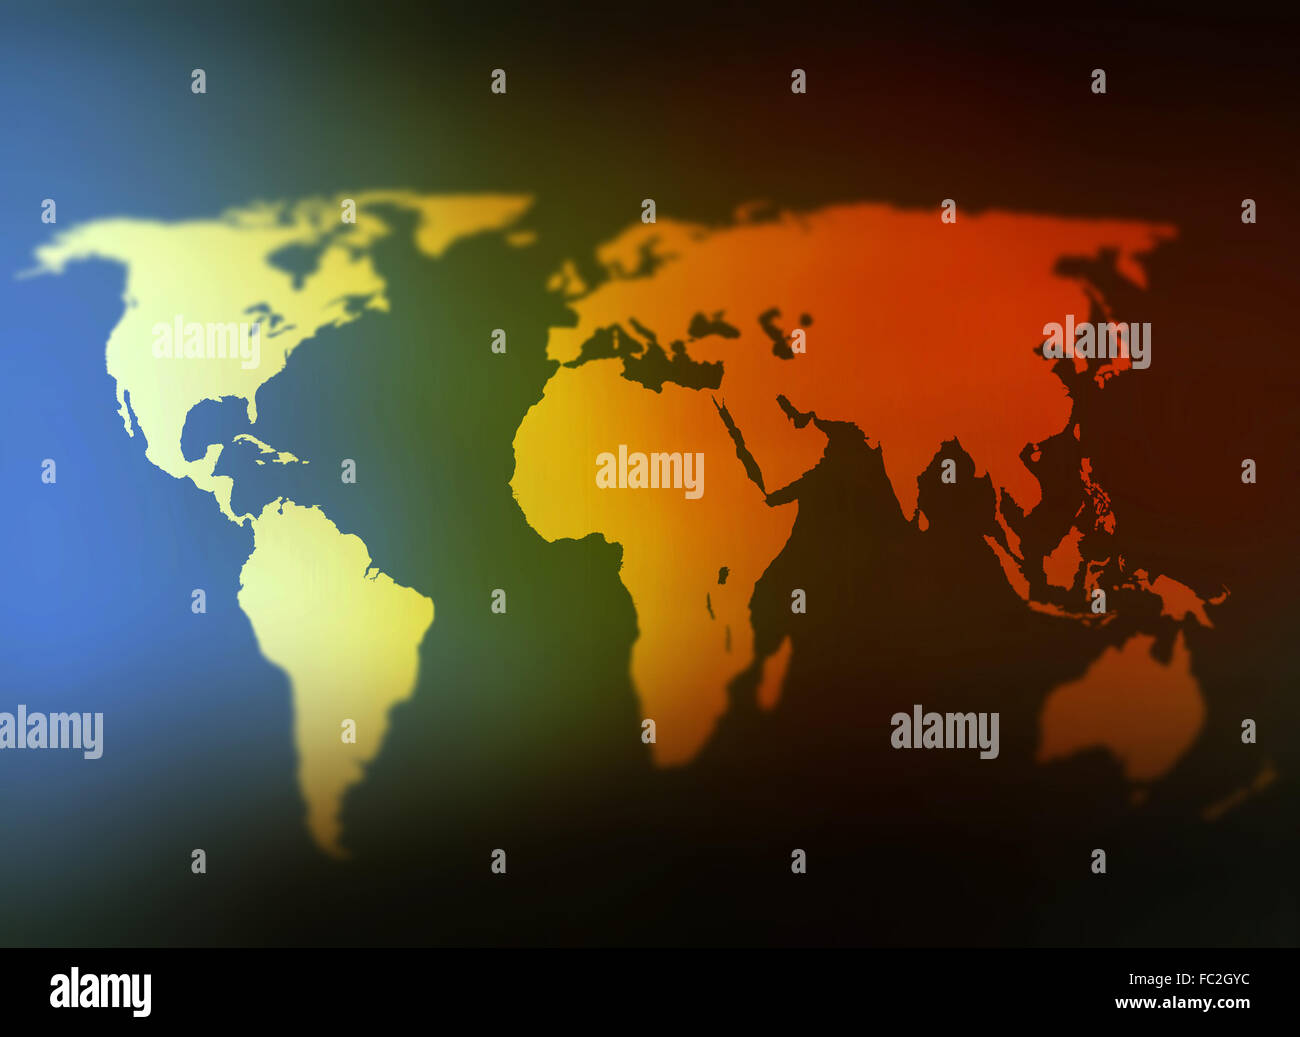 Day and night world map selective focus Stock Photo: 93484928 - Alamy